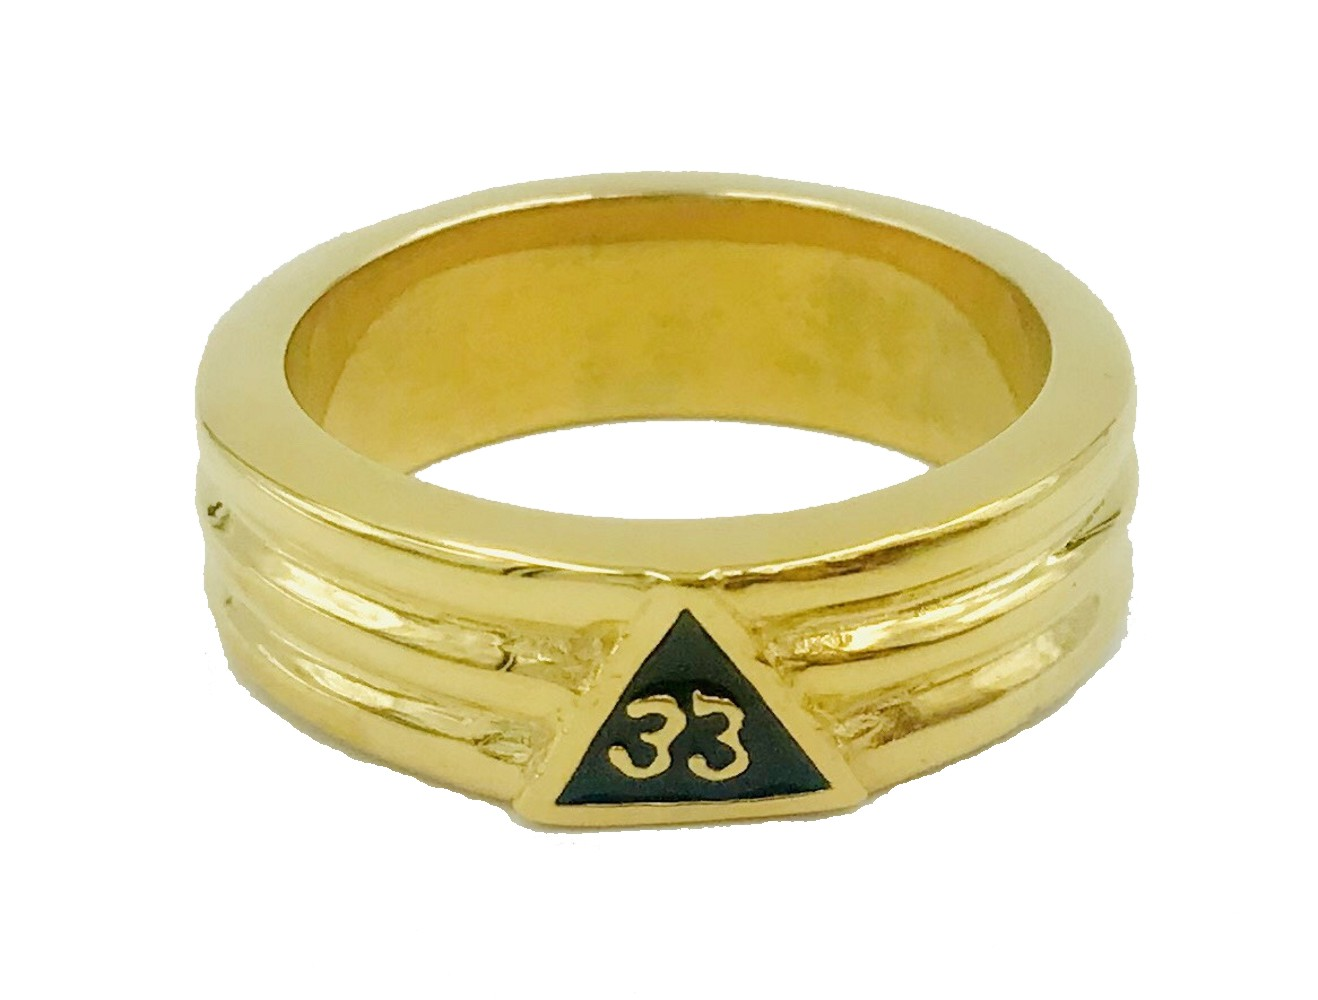 33rd Degree Ring in Stainless Steel Layered in Gold